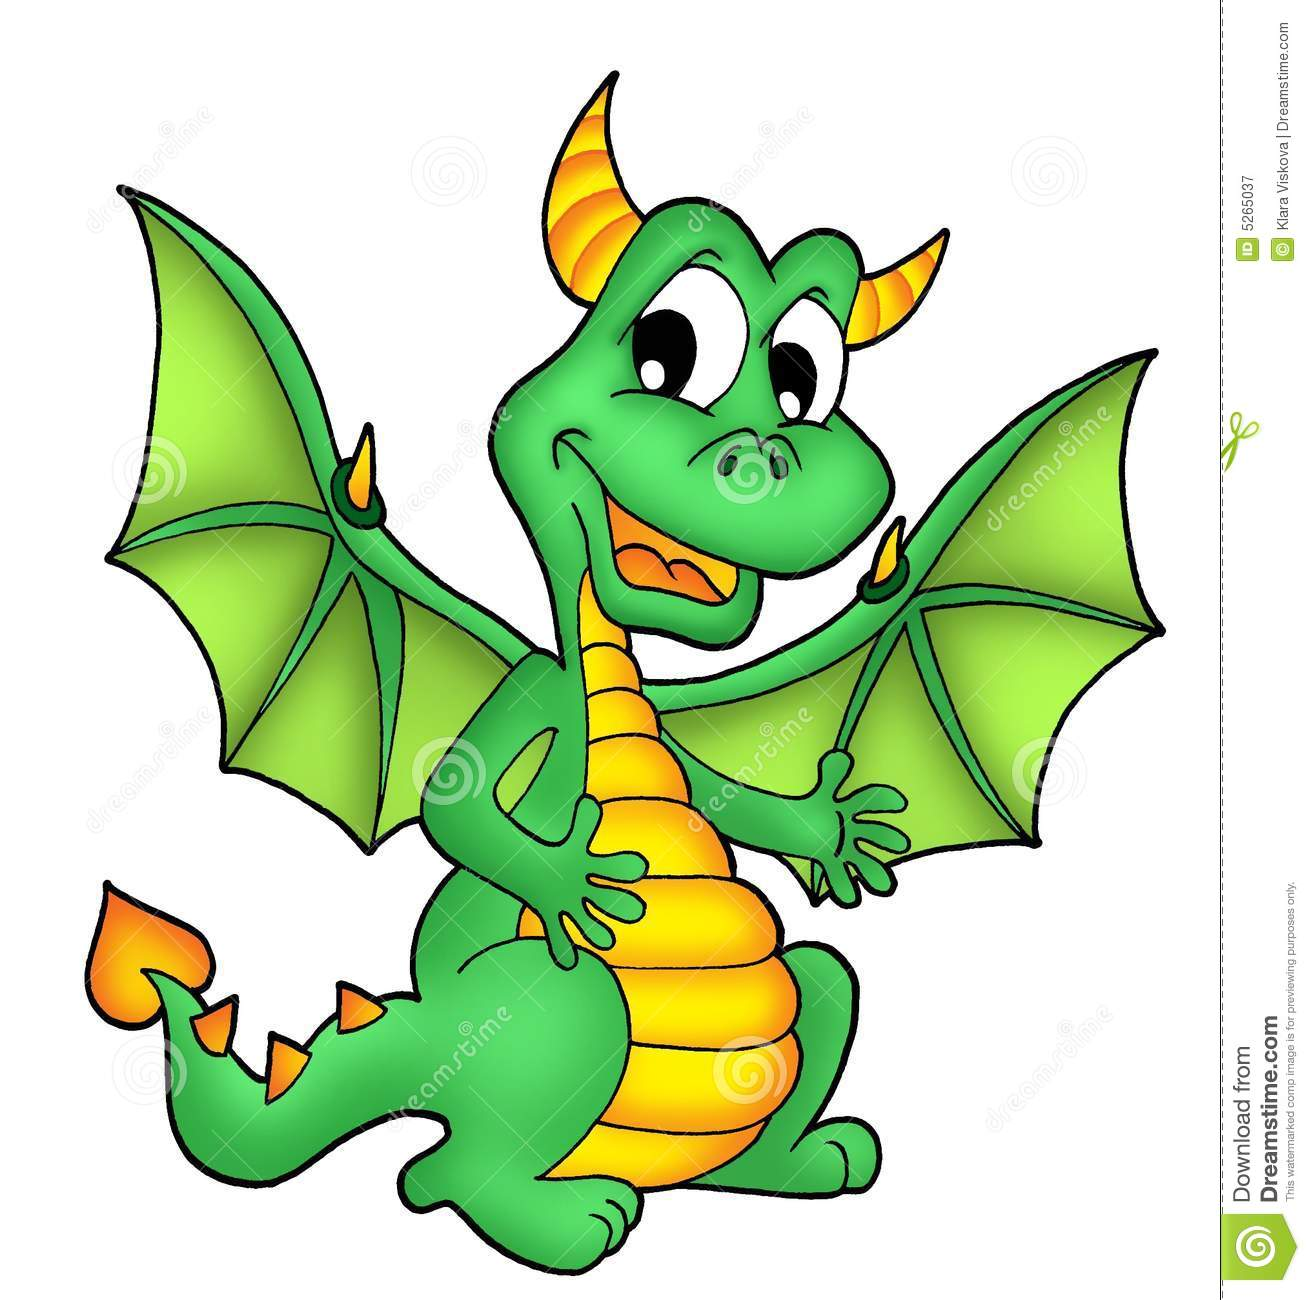 Green Dragon Royalty Free Stock Photography - Image: 5265037